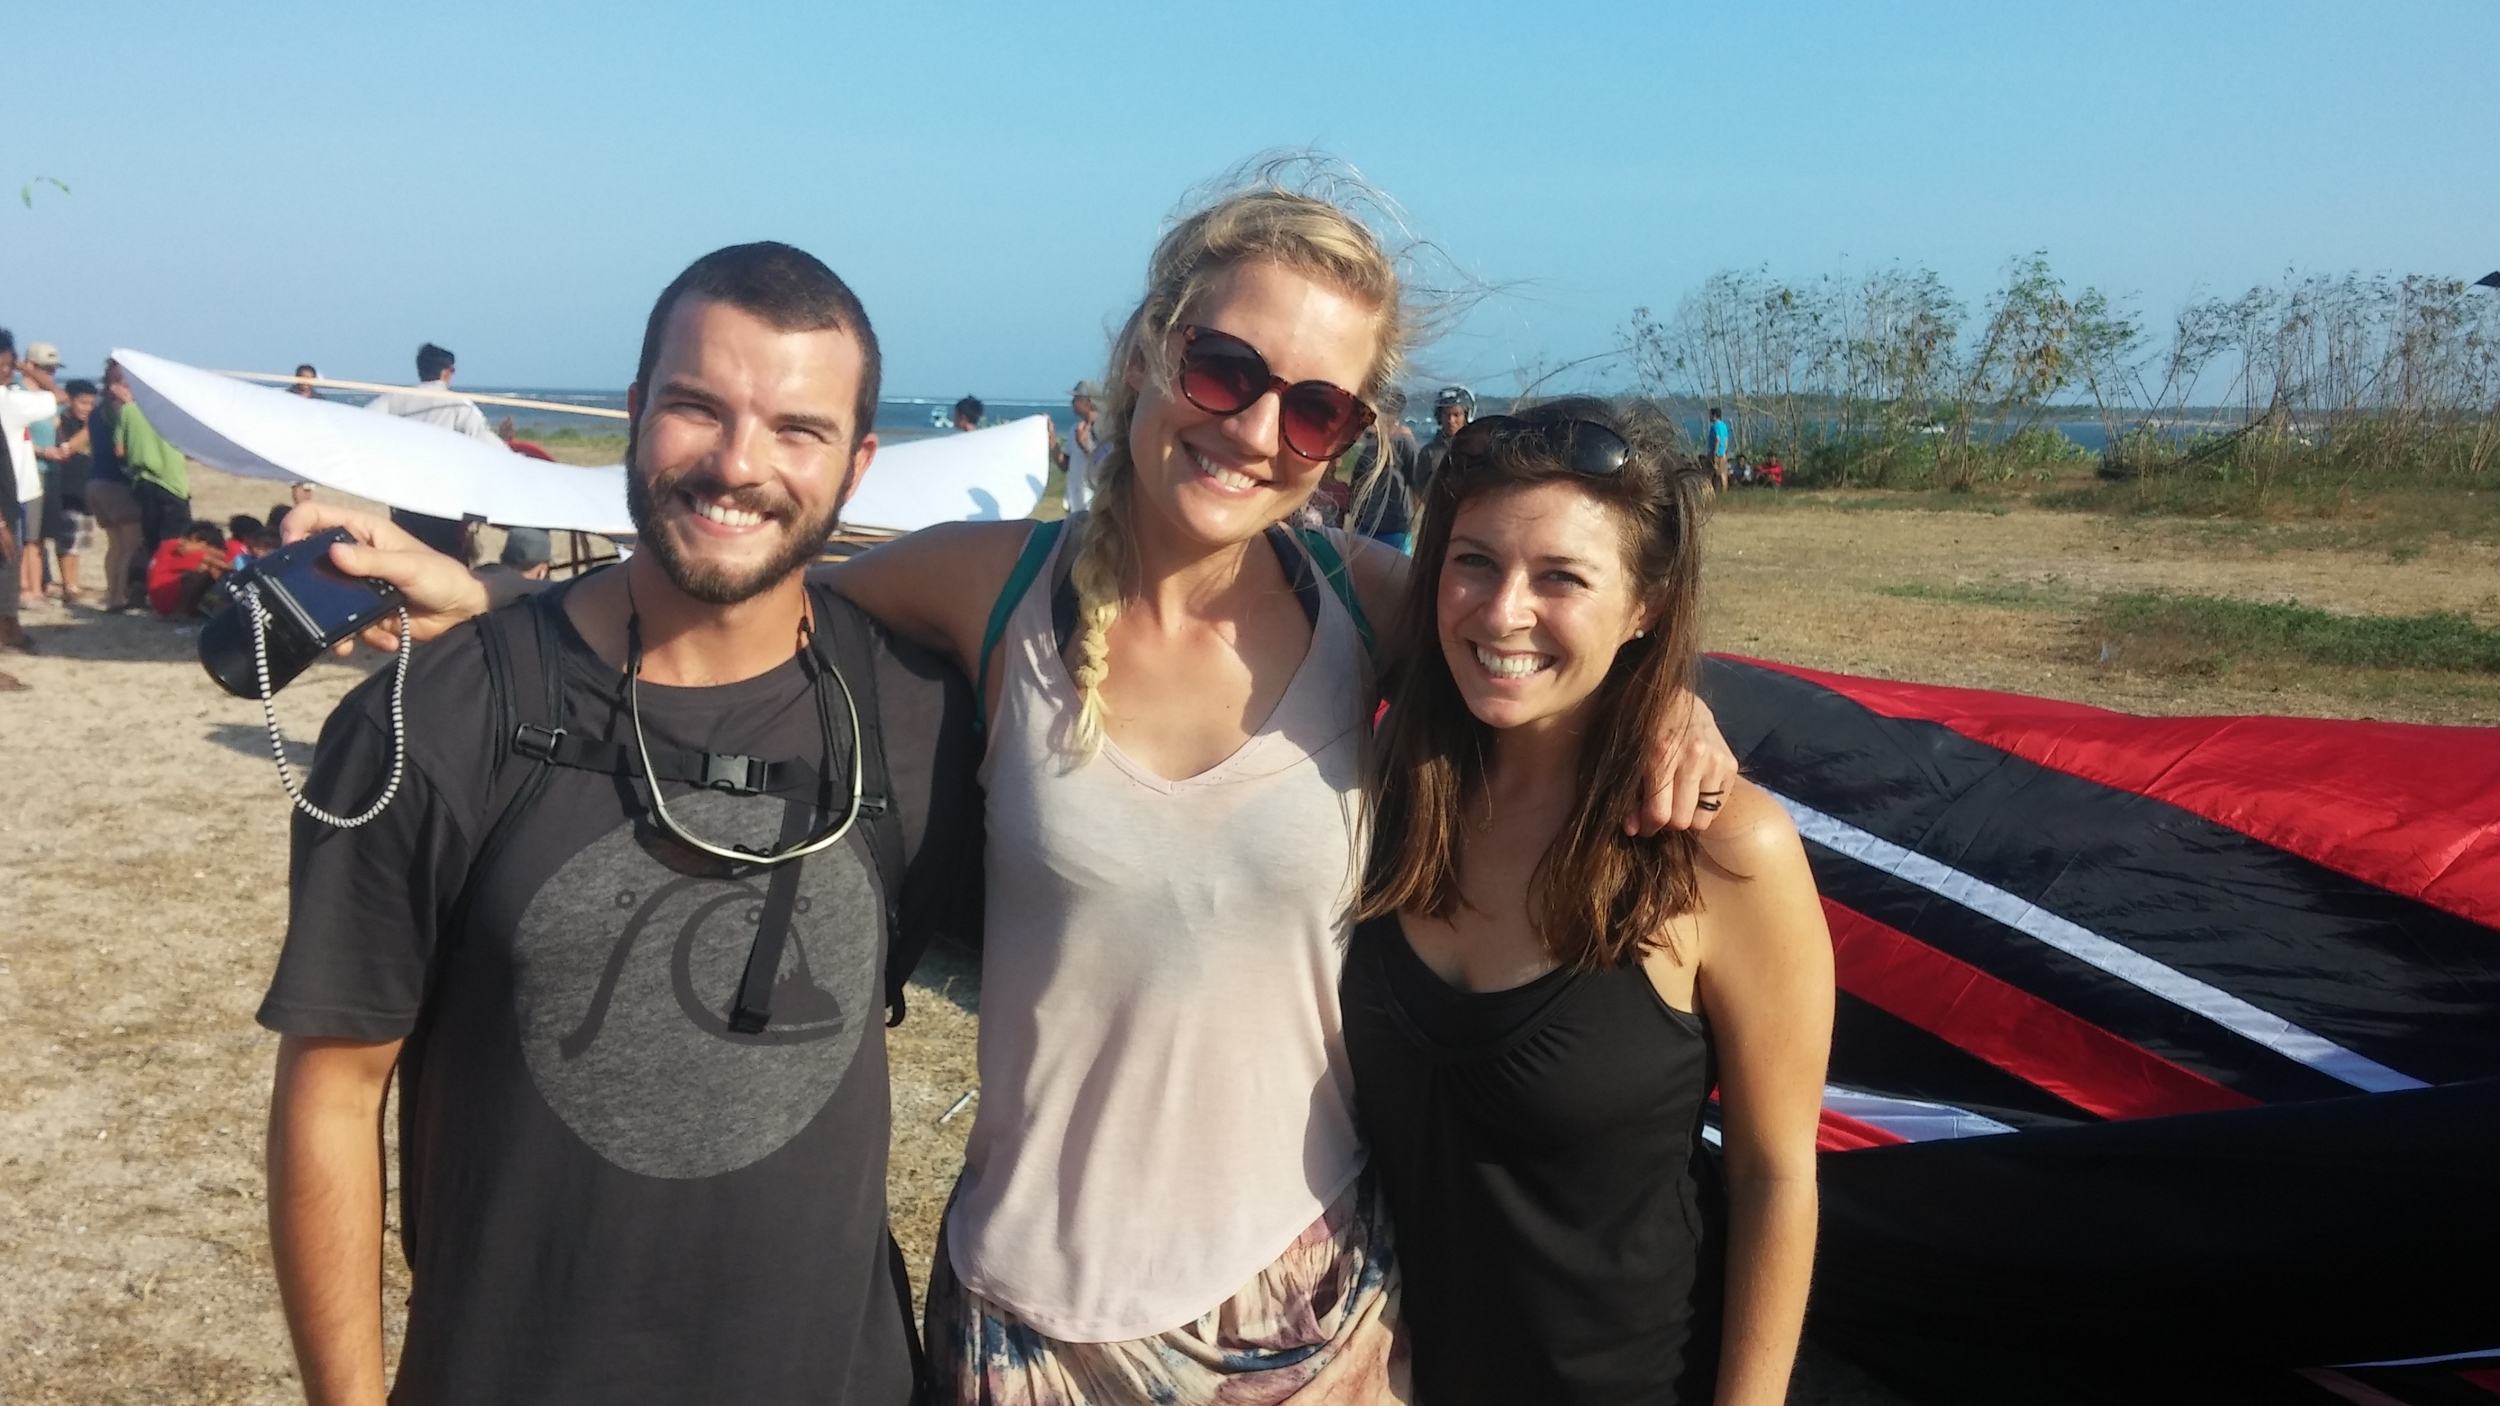 We met Laura in New Zealand and reunited in Bali! So cool experiencing this together!